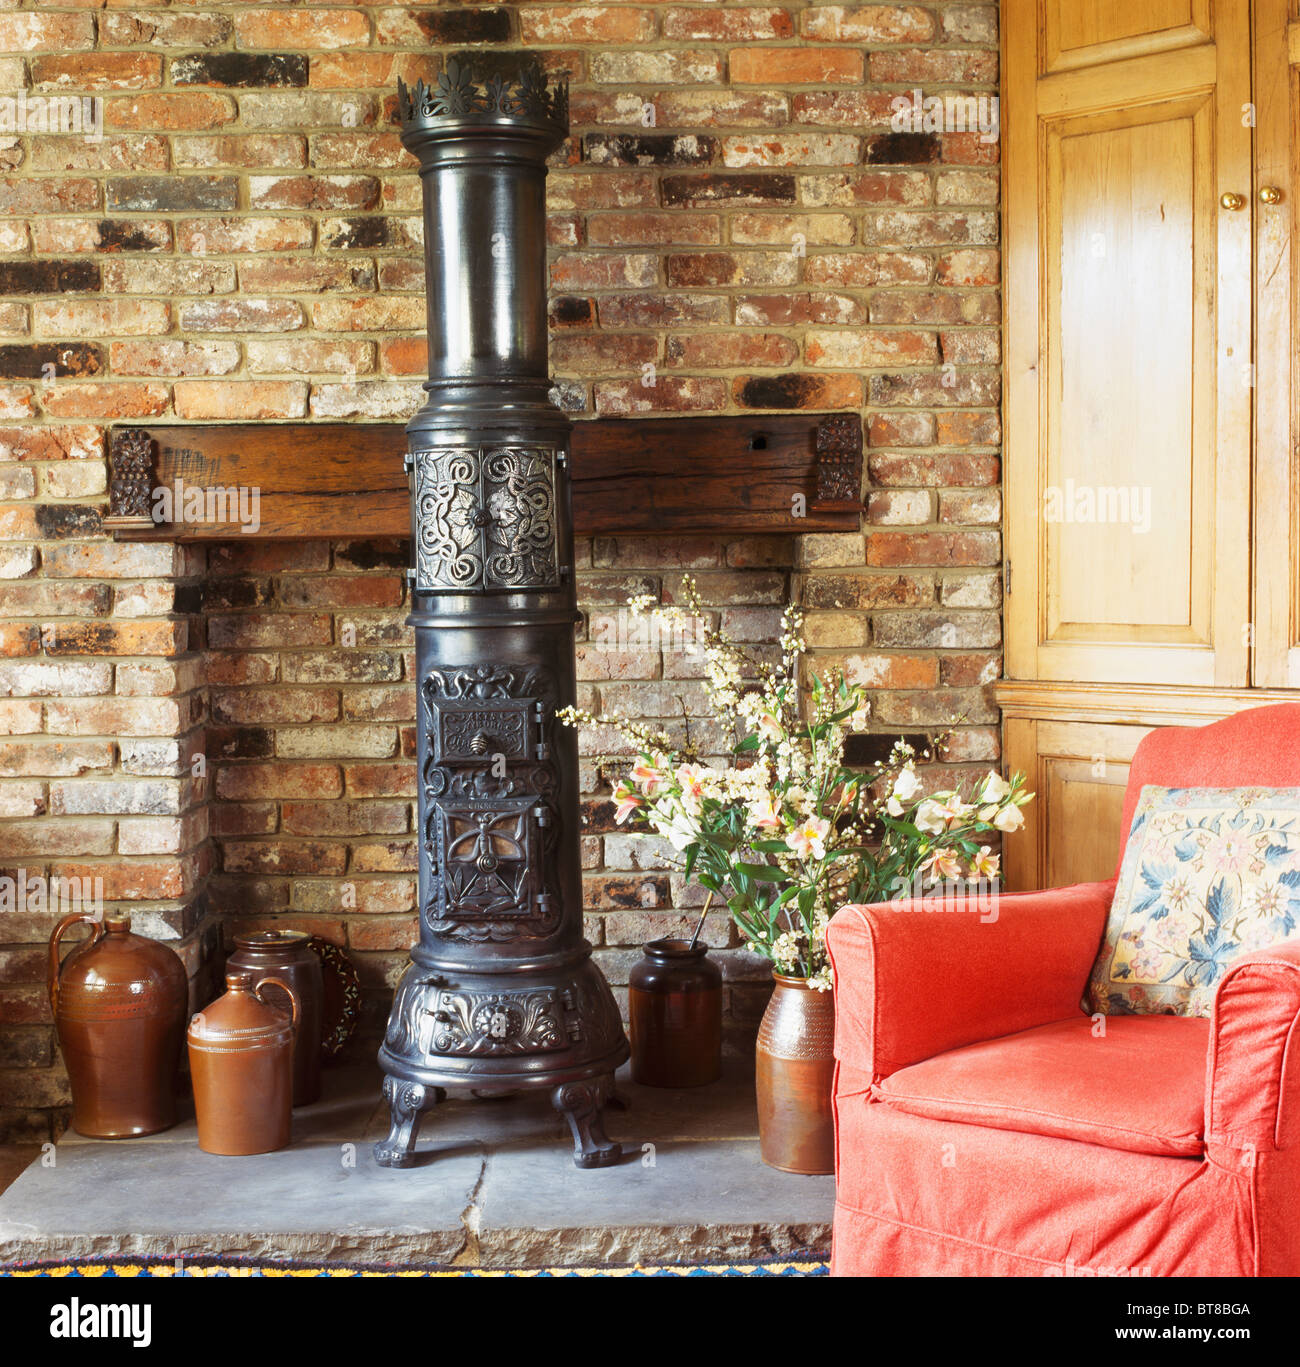 black cast-iron victorian-style stove in brick fireplace of